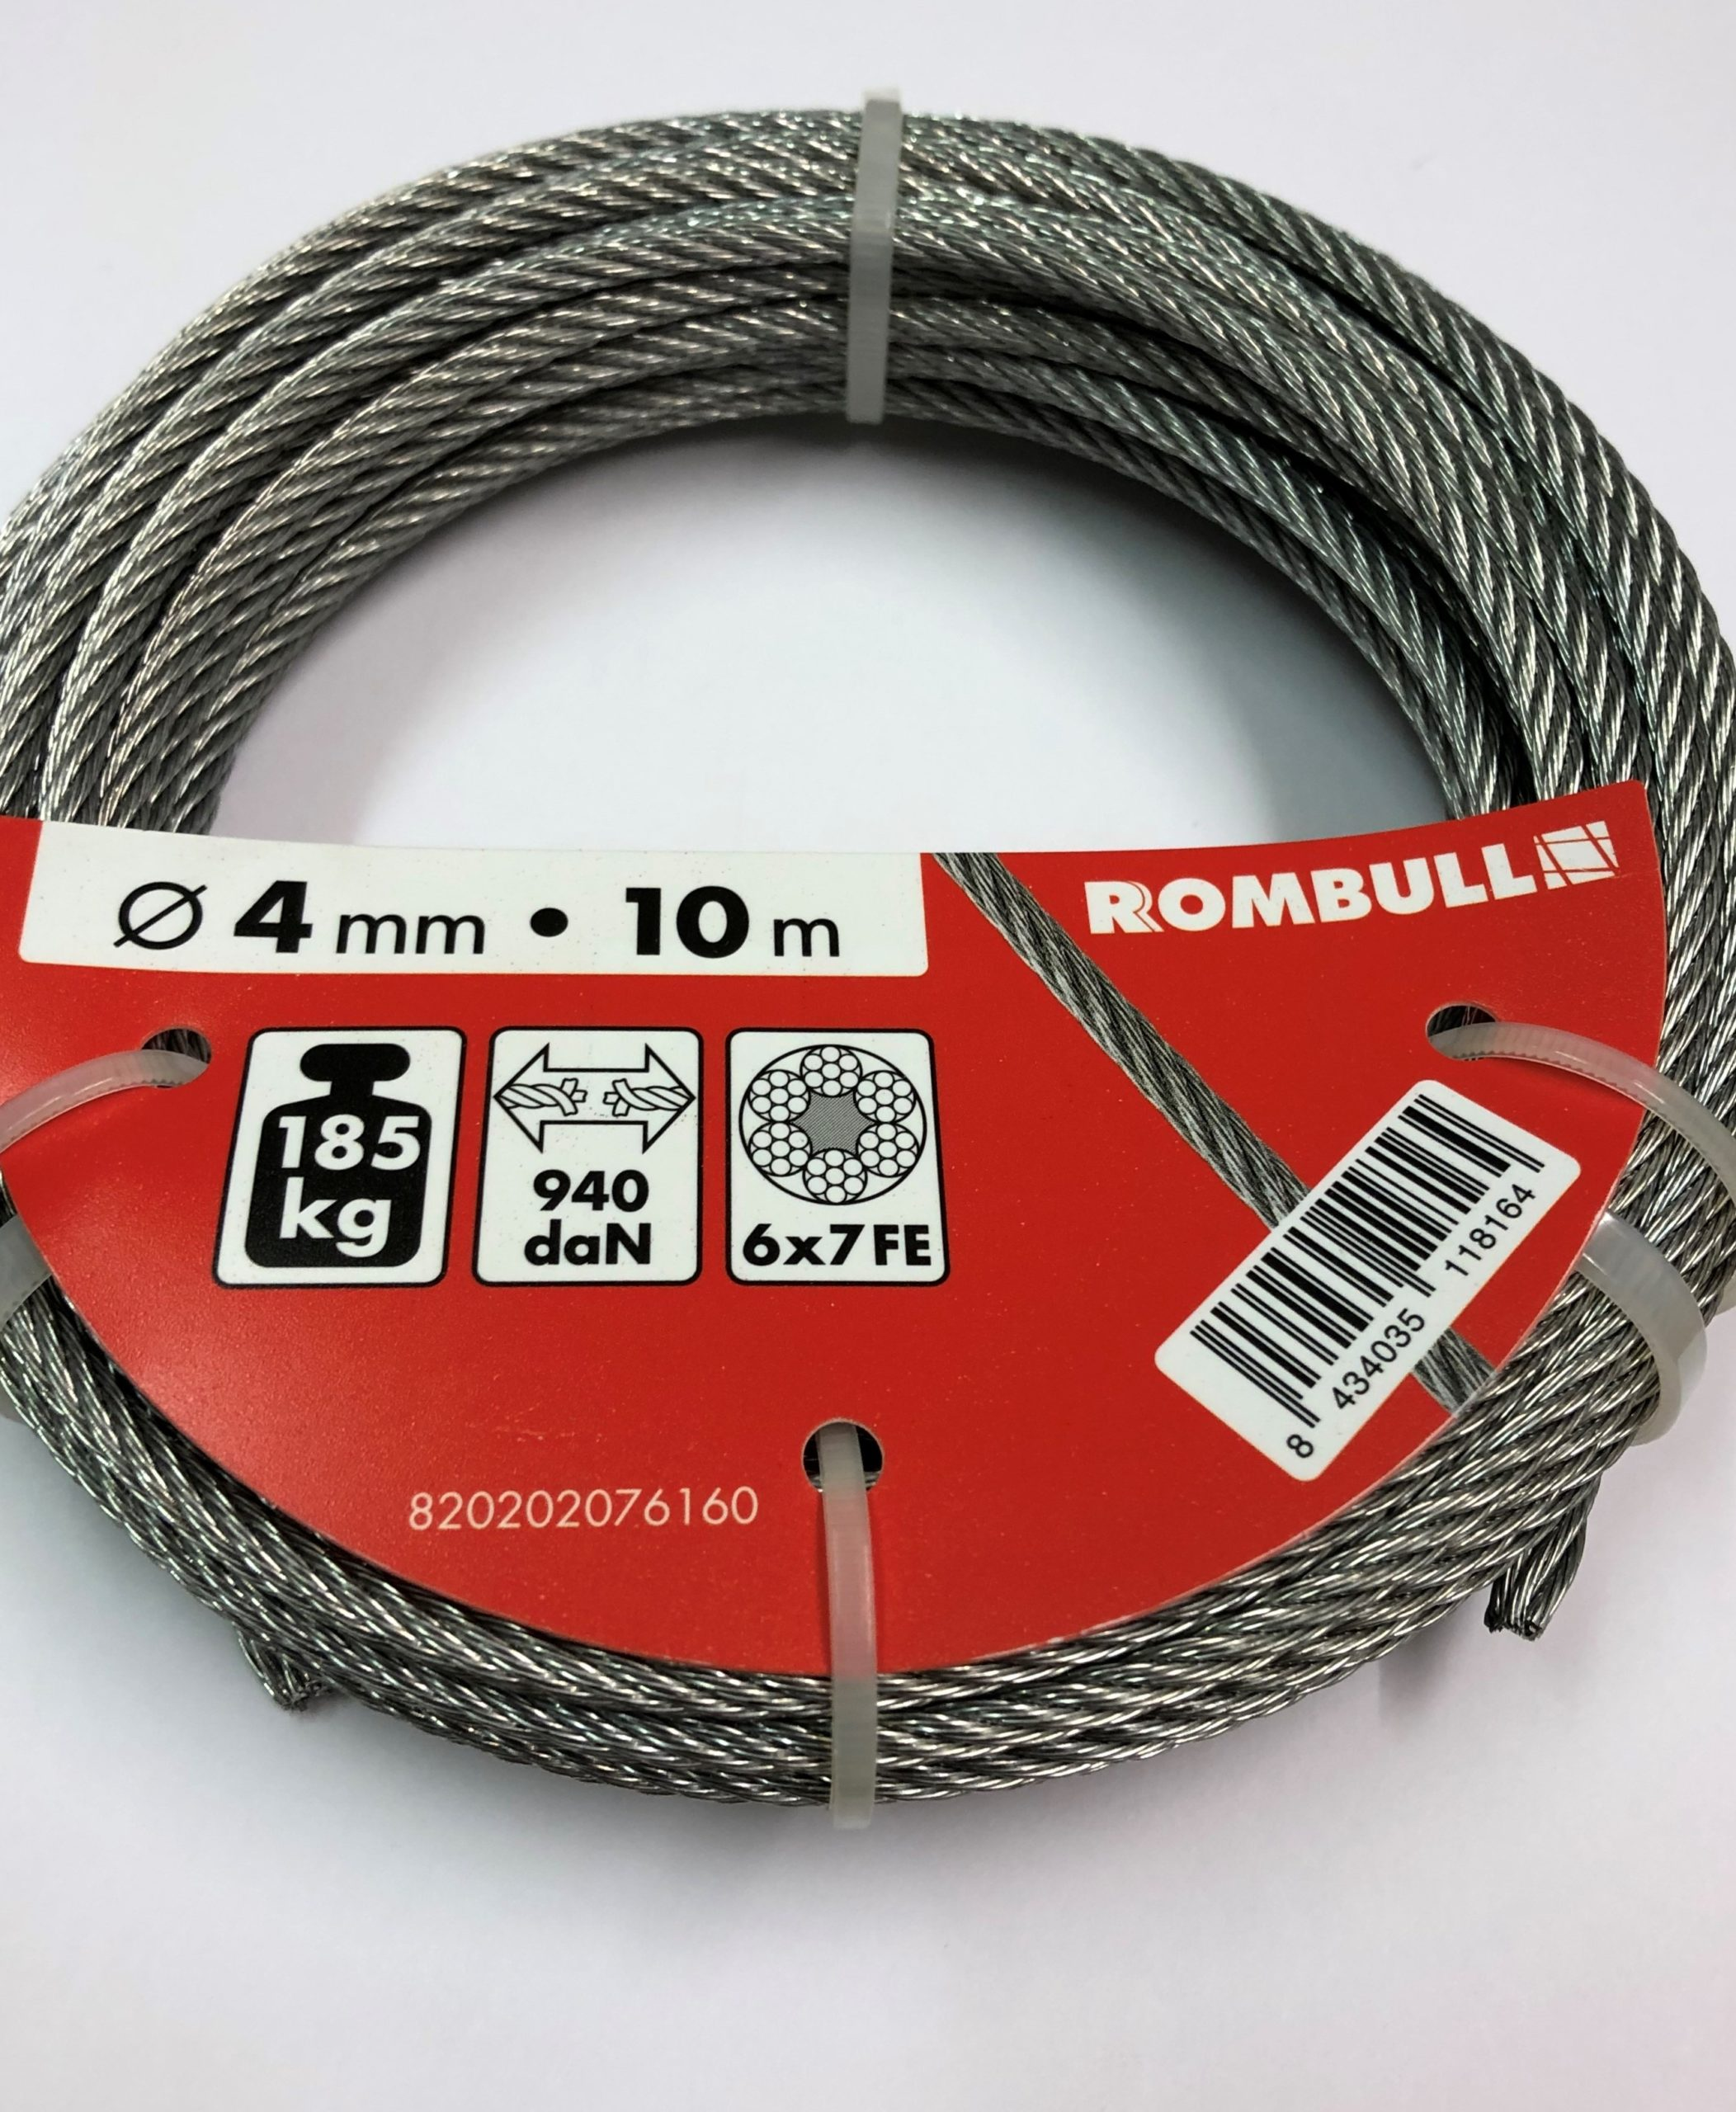 Steel wire rope 4x10m